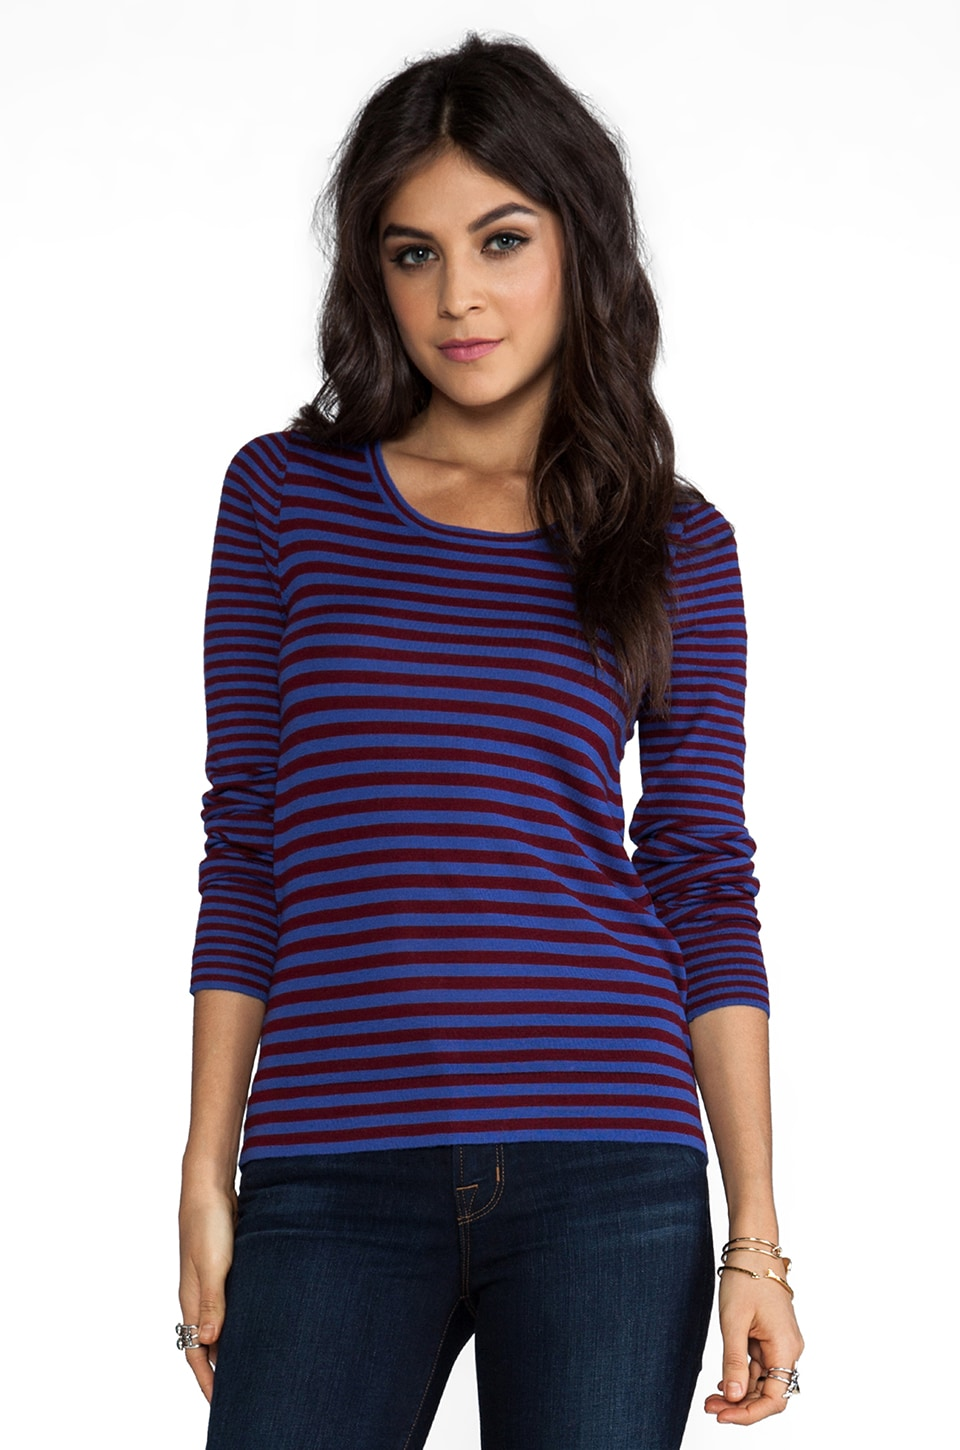 Marc by Marc Jacobs Fione Sweater in True Blue Multi